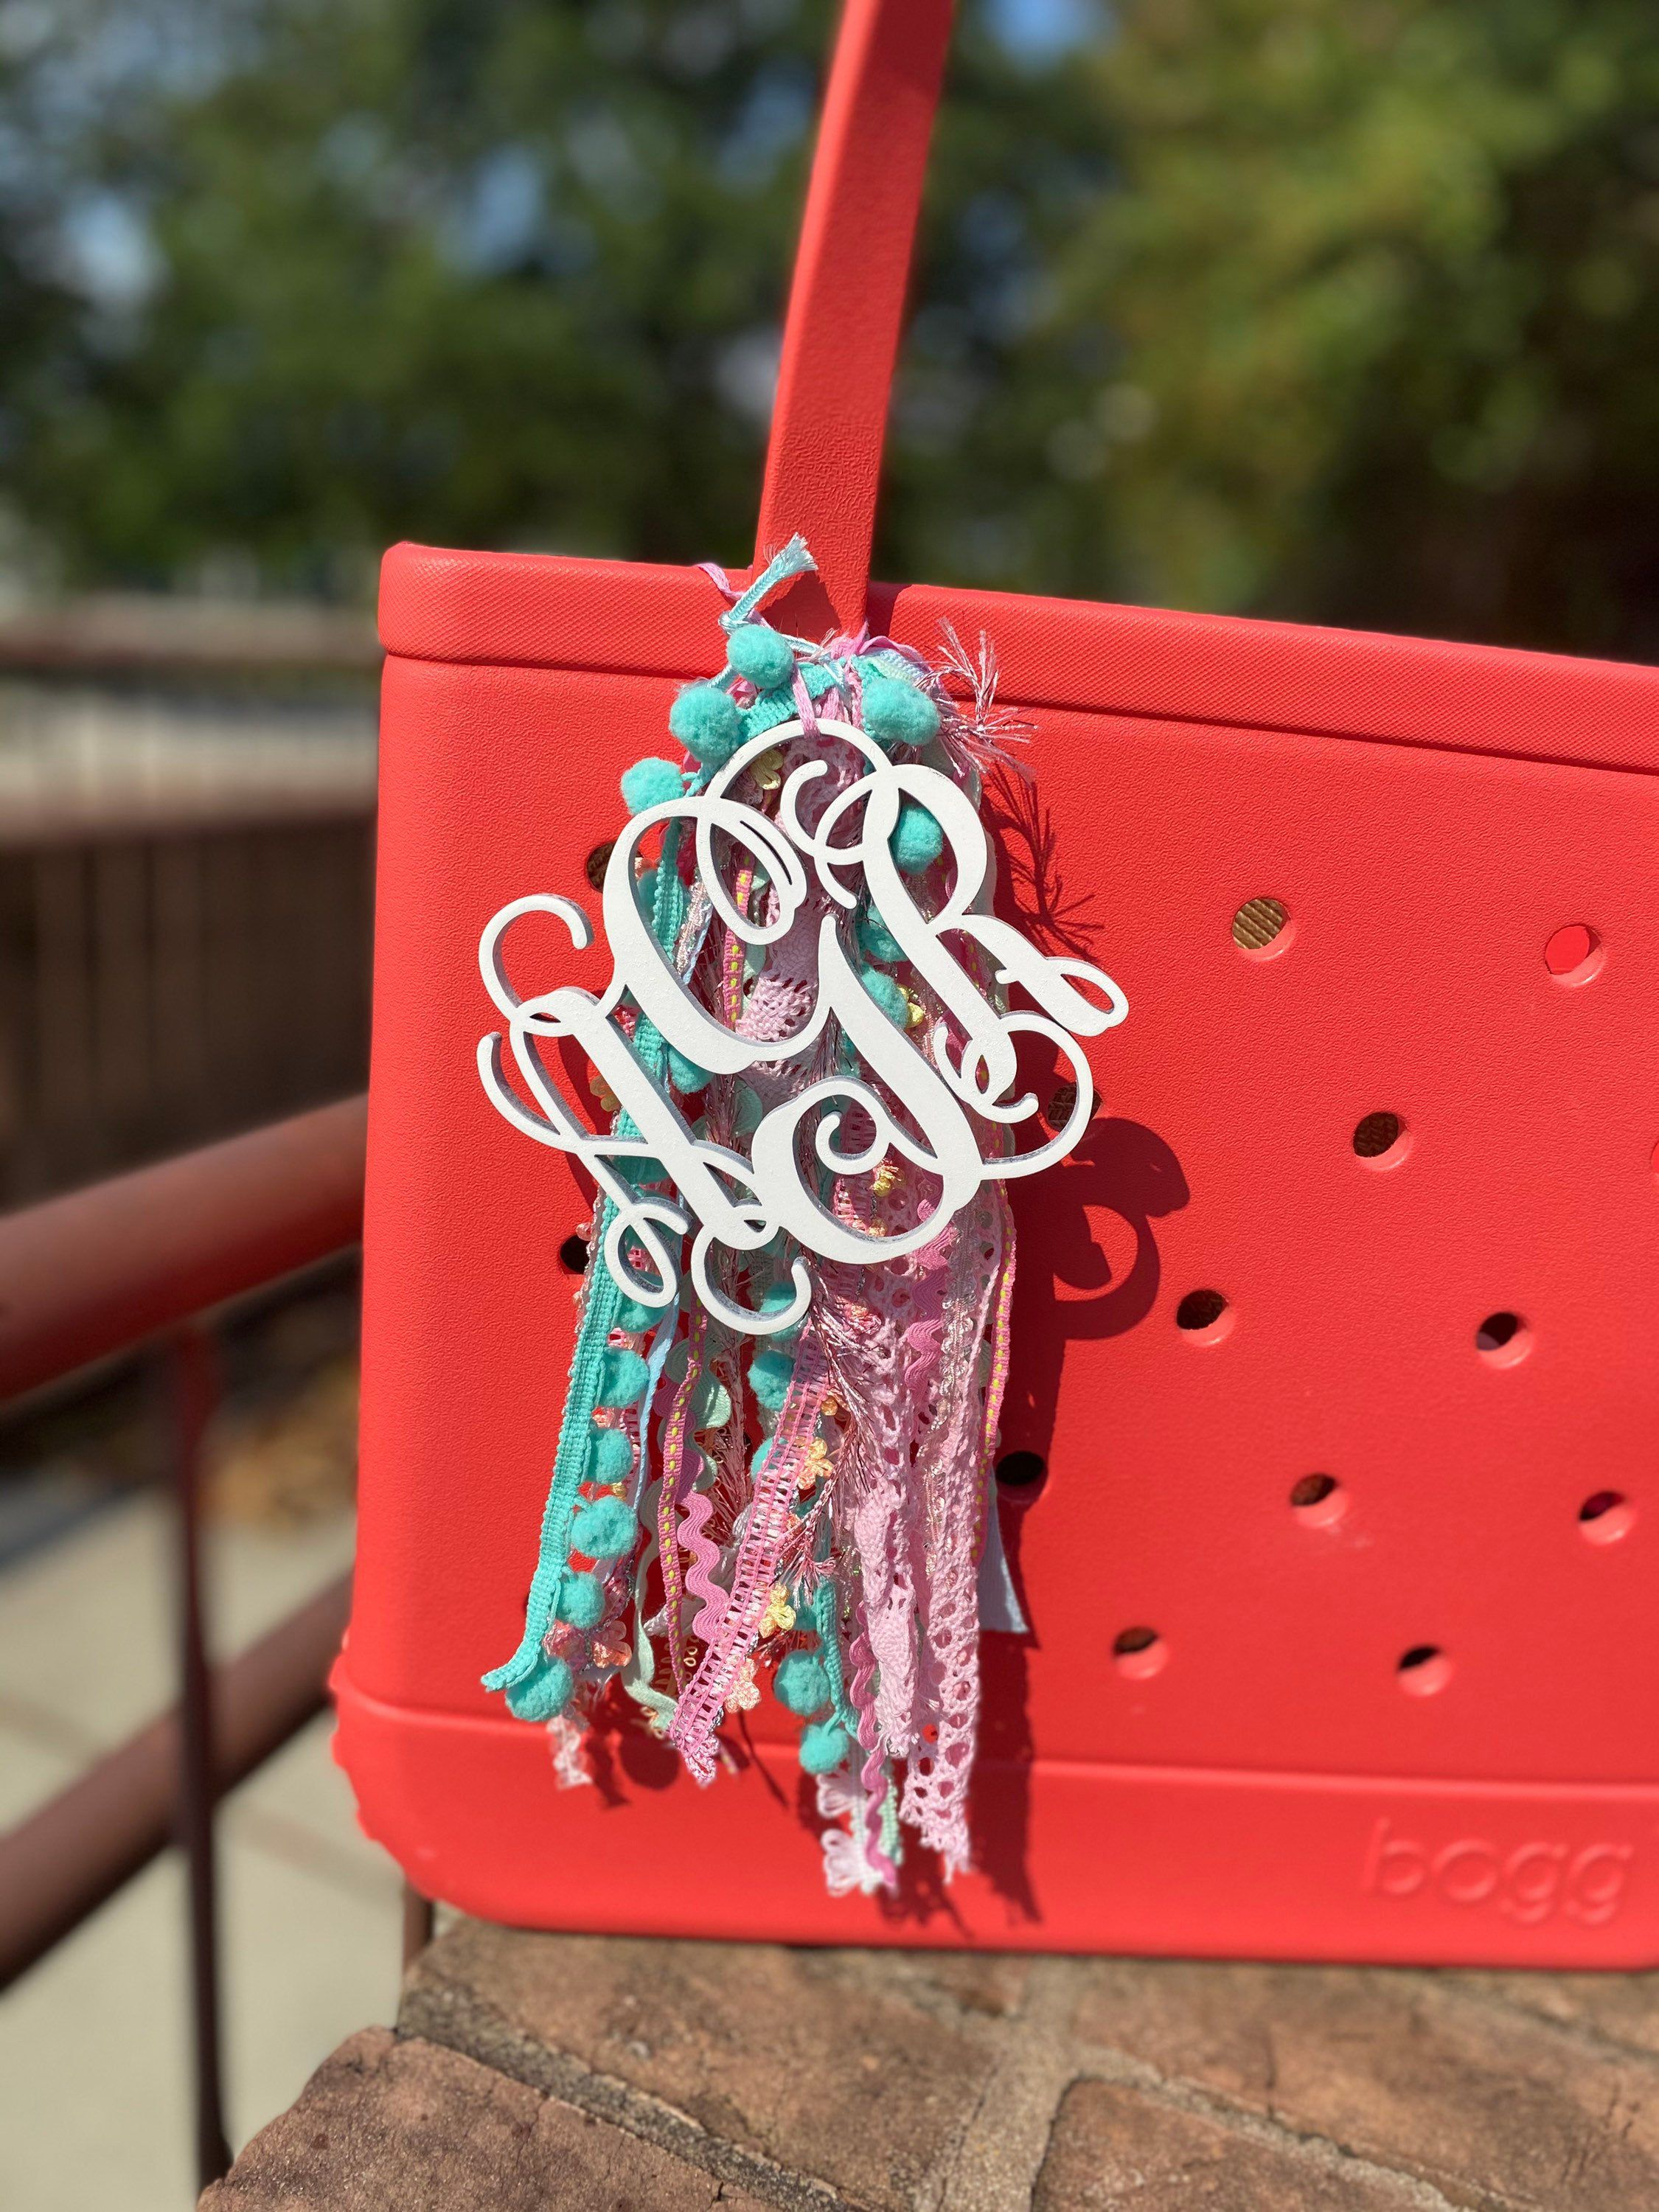 Bogg Bag Charm Bogg Bag Monogram Bogg Bag Accessory Etsy In 2020 Bag Charm Bags Bag Accessories